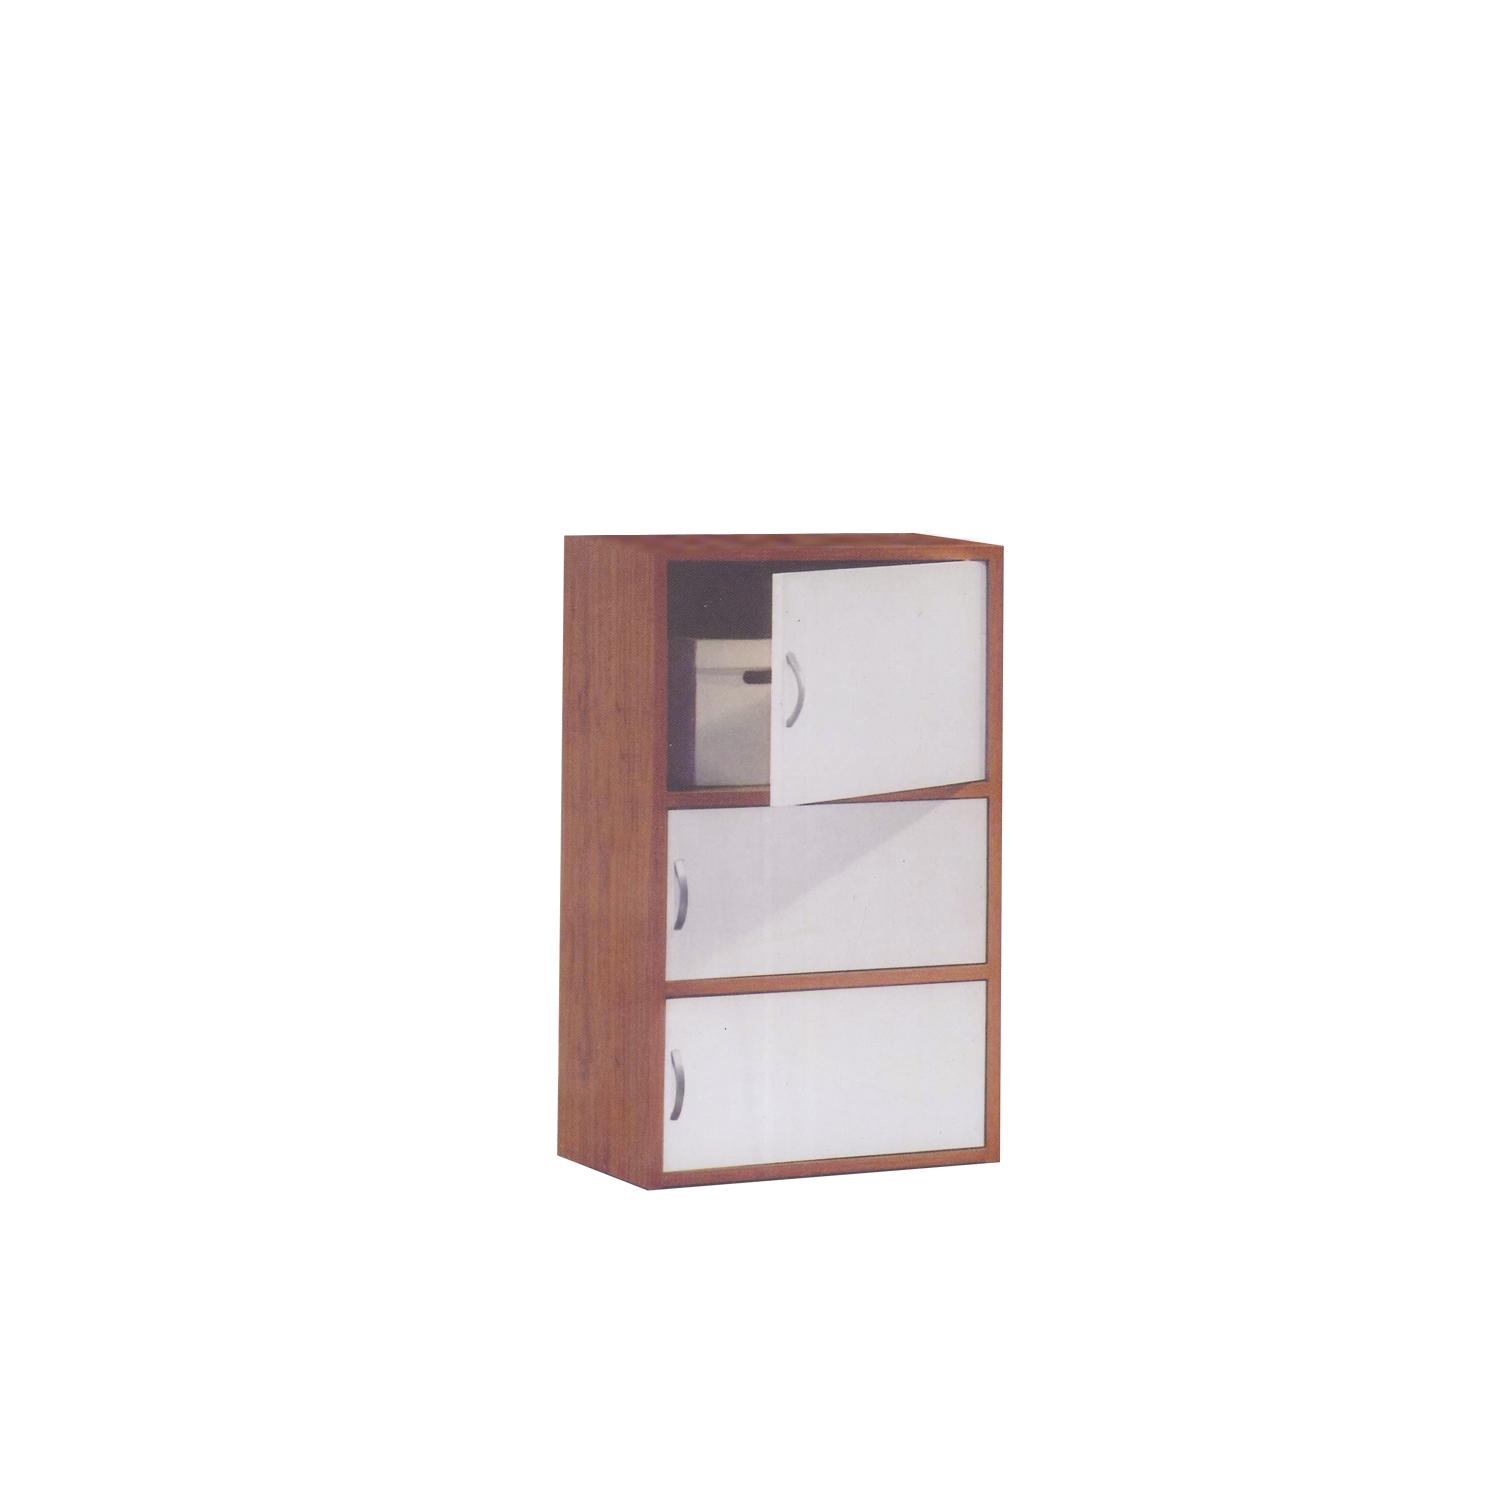 Ratika 1 Storage Cabinet